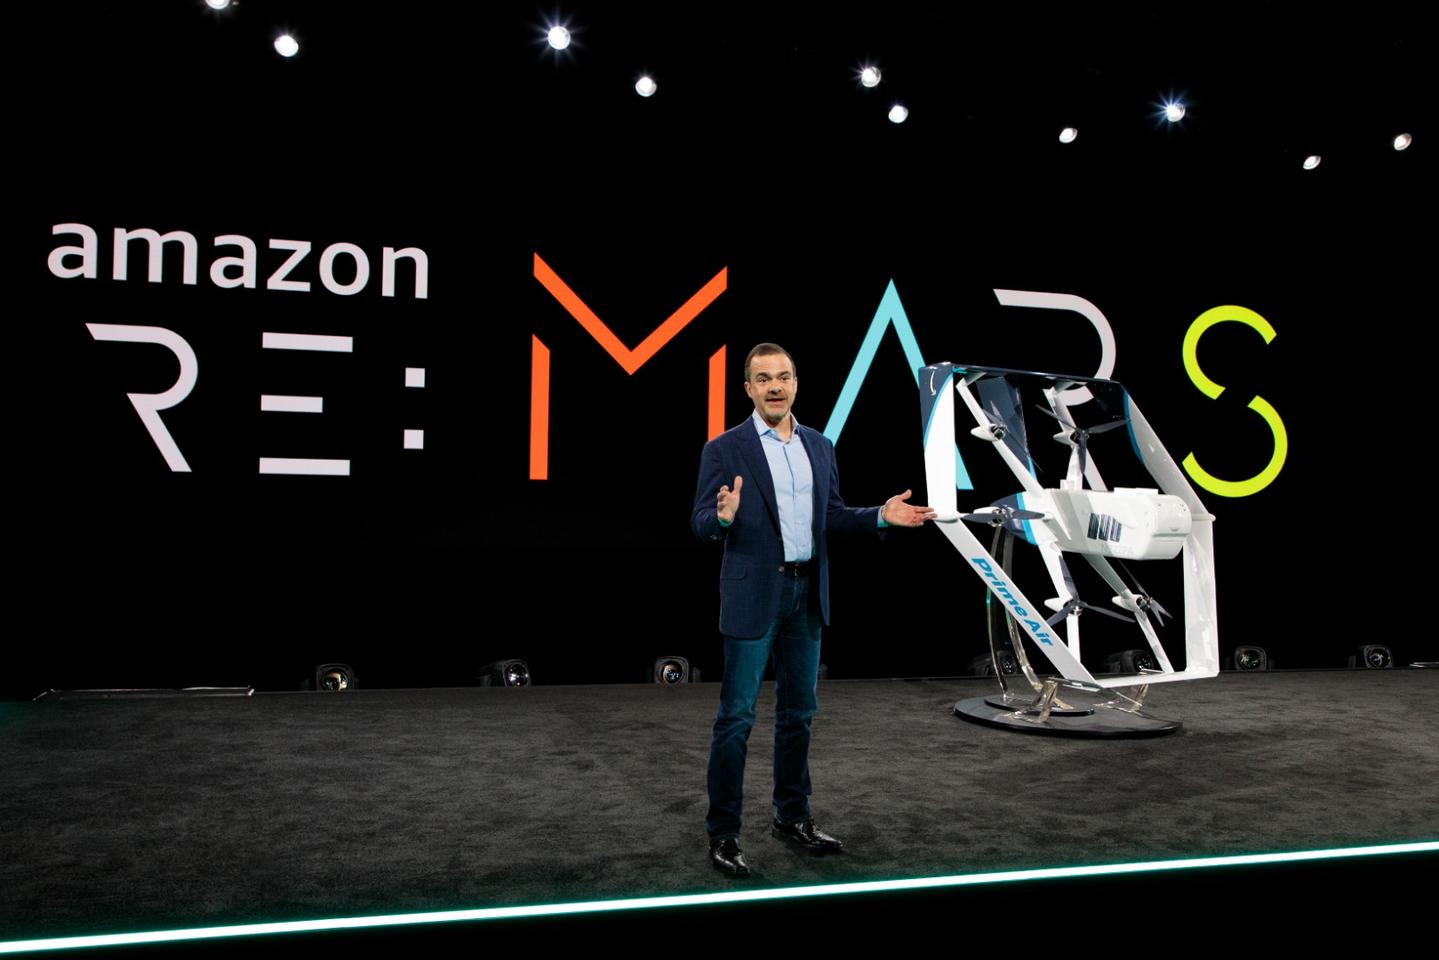 Amazon's new delivery drone can switch from vertical to horizontal flight